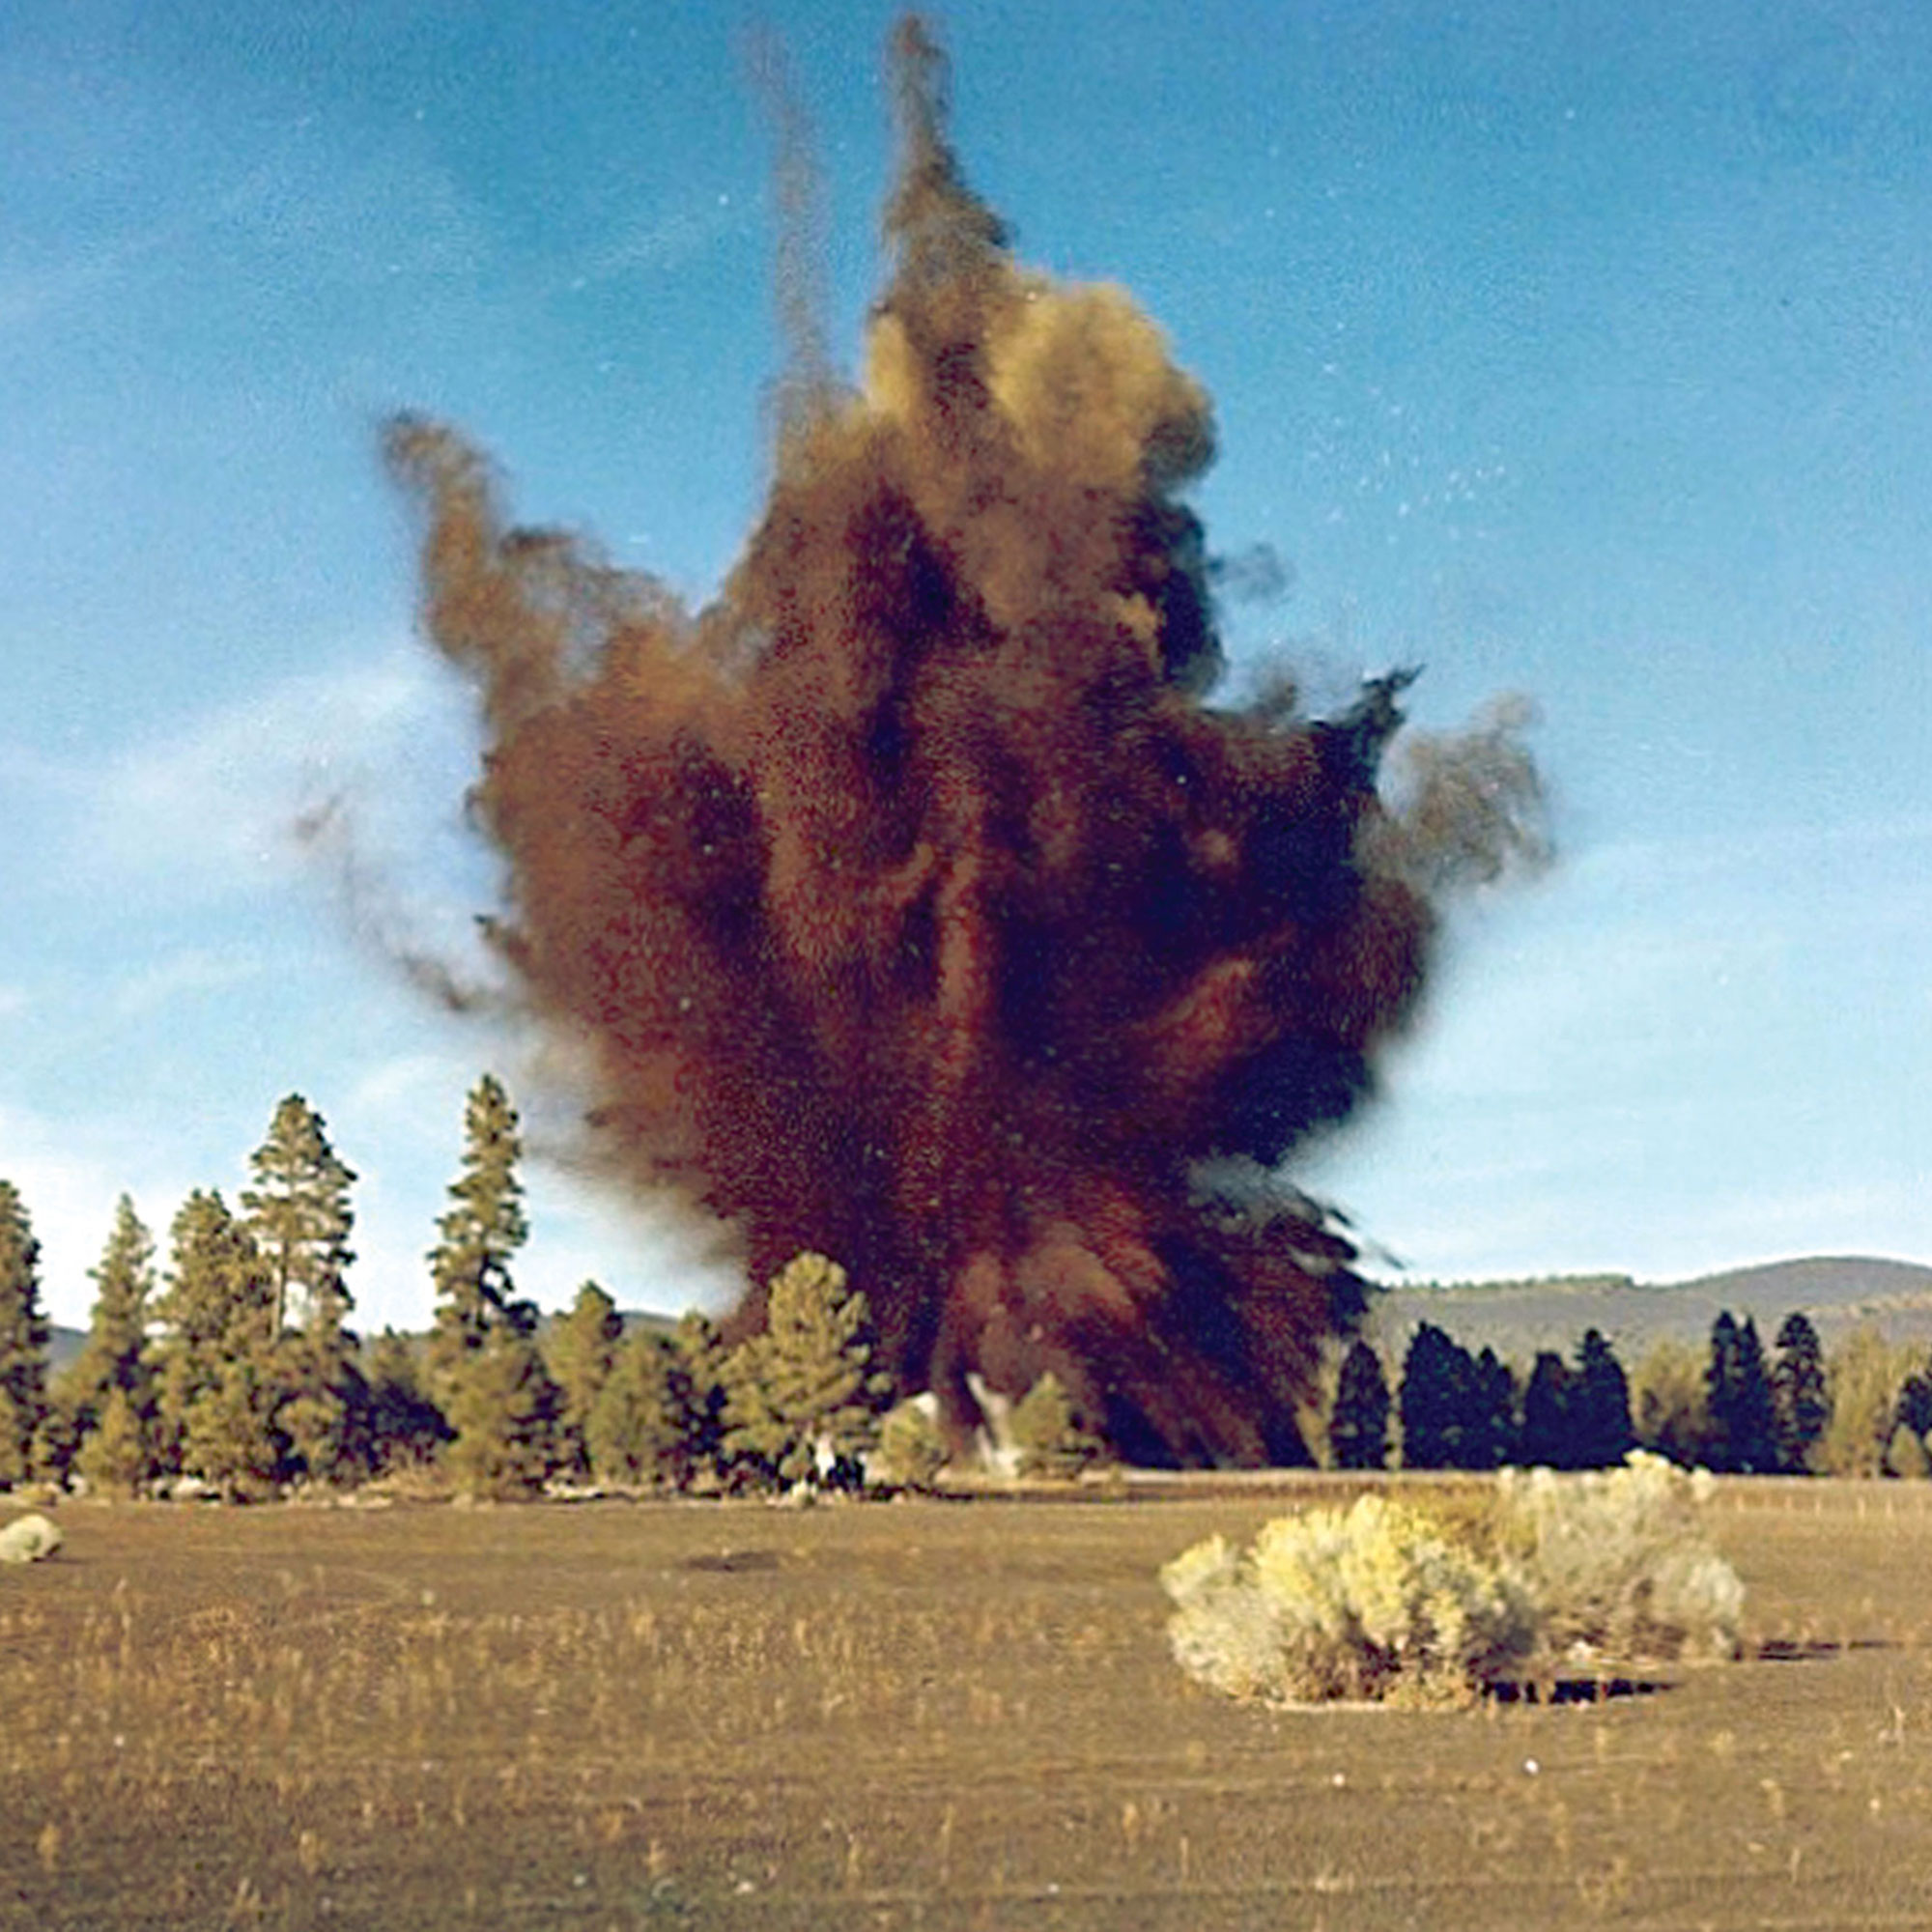 one of the many explosions created at Cinder Lake, east of Flagstaff, to replicate the craters on the moon